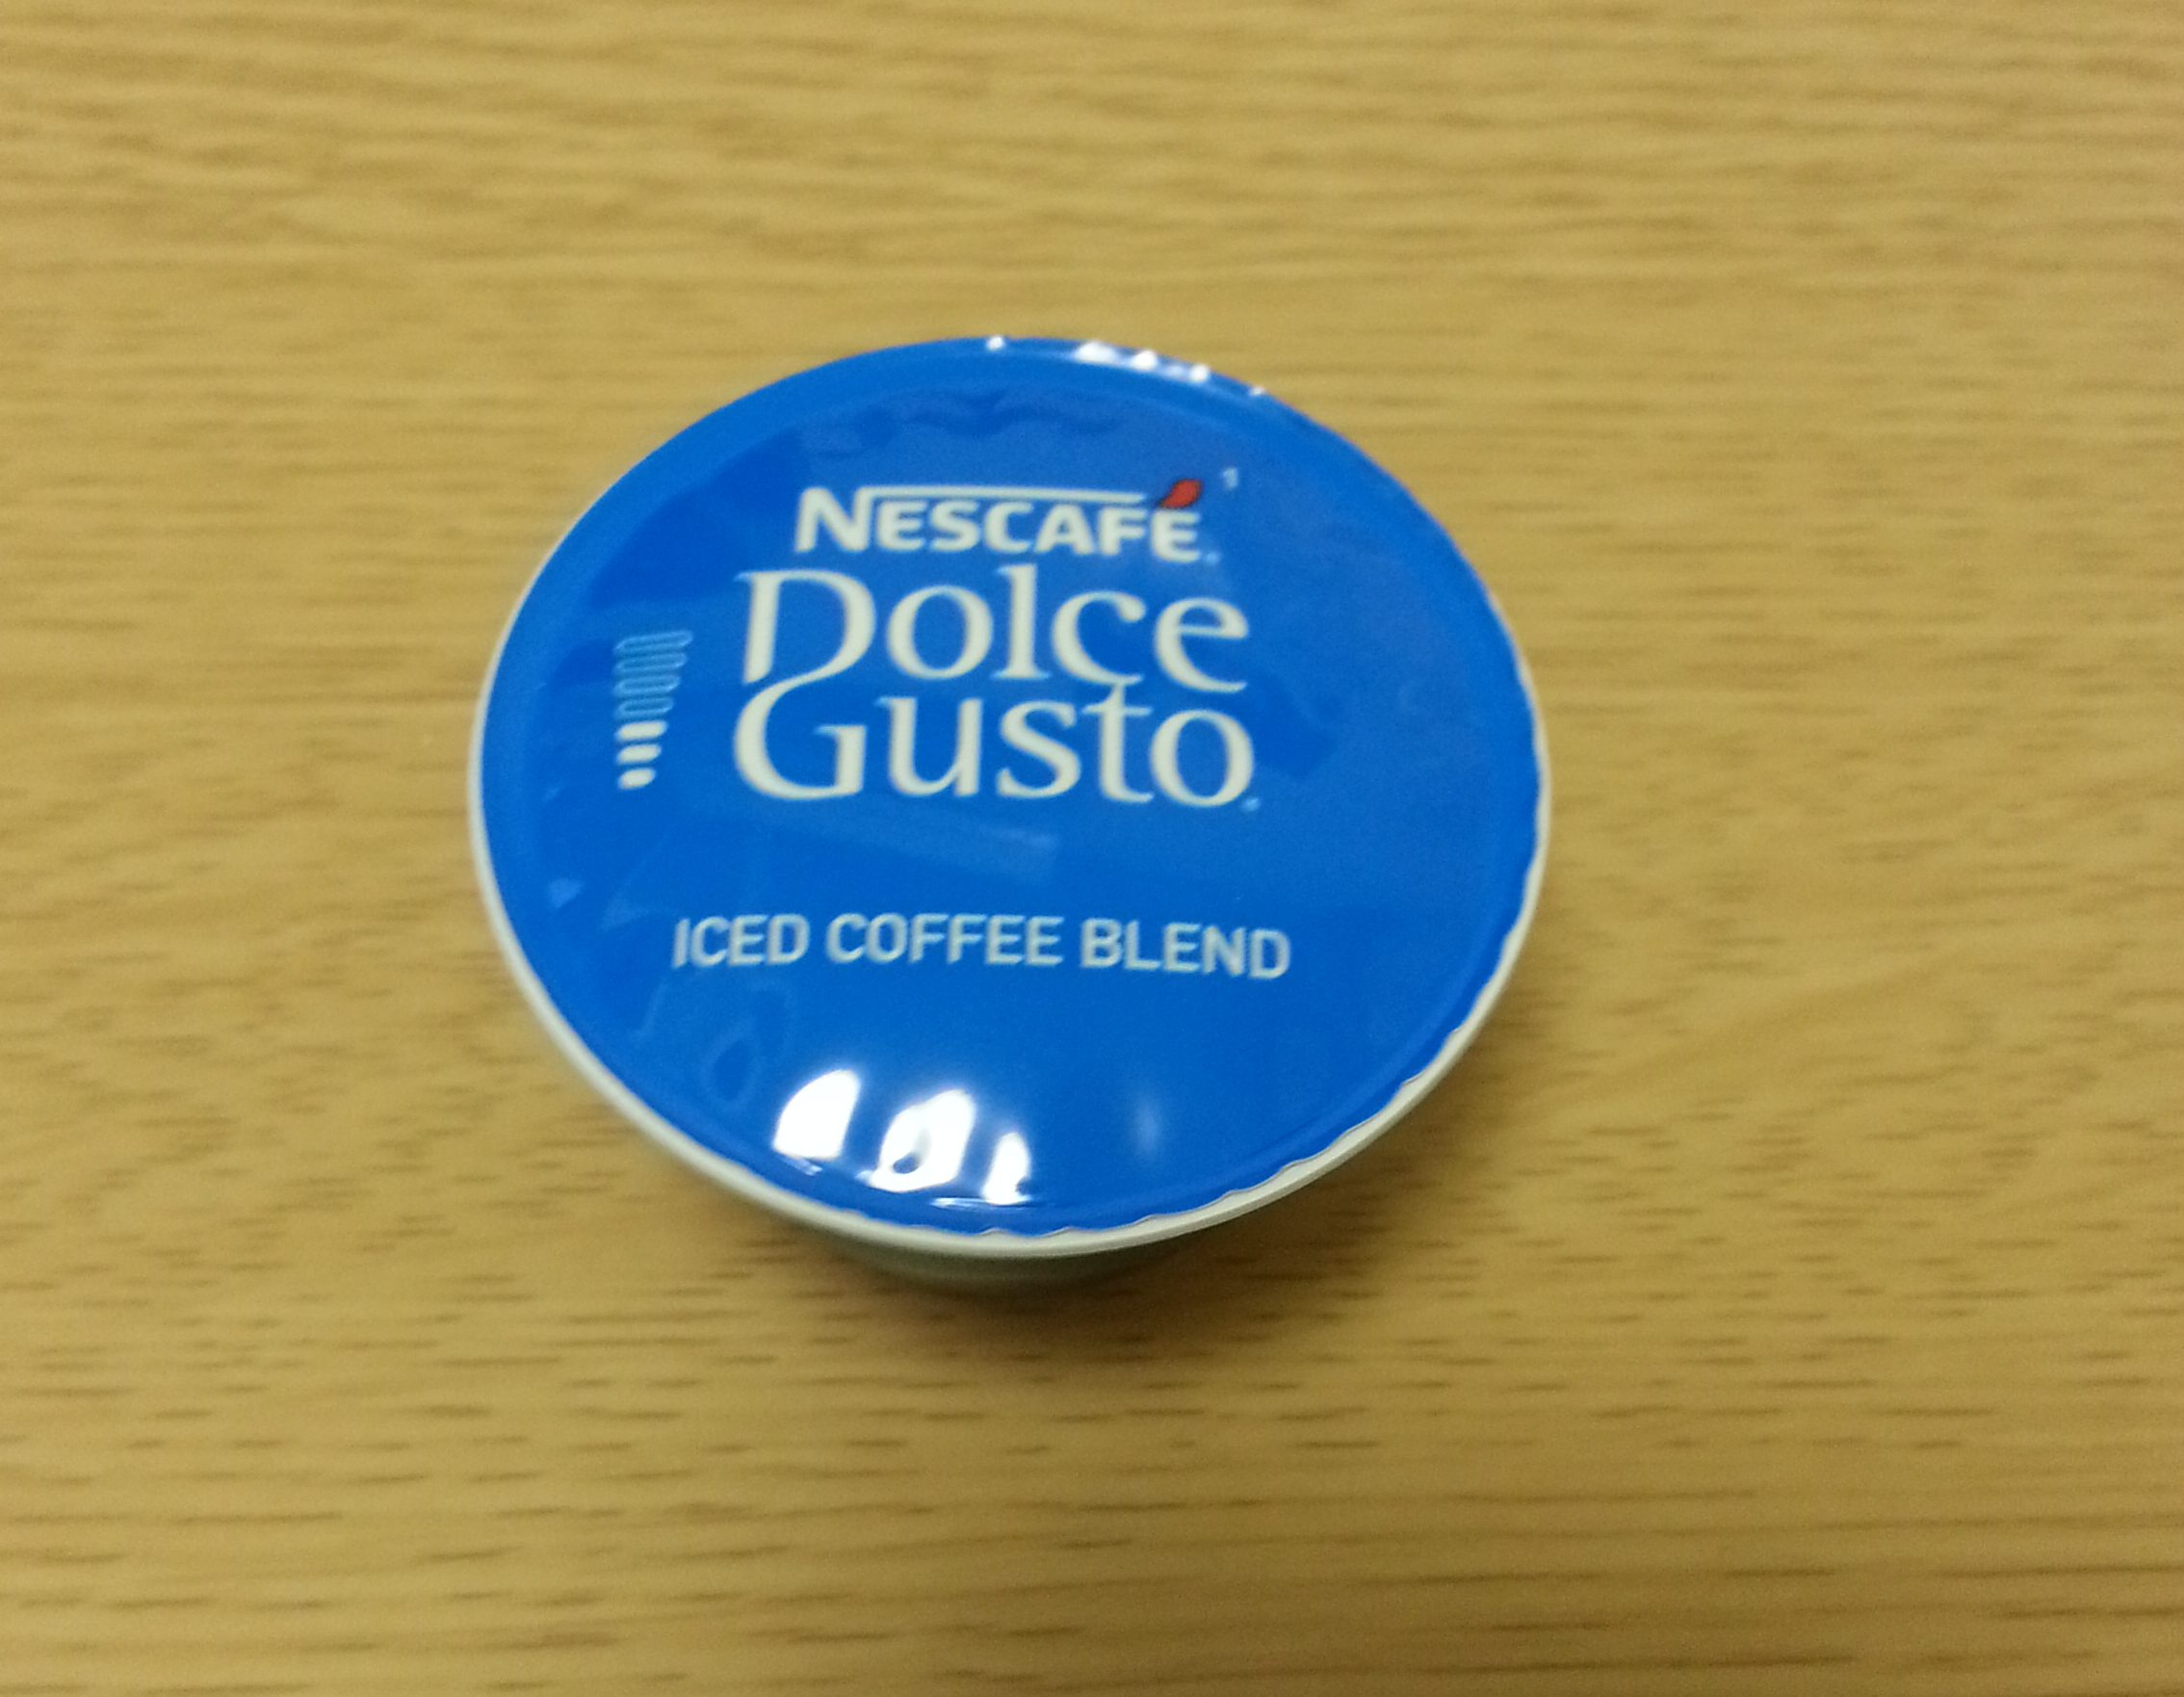 nescafe-dolcegusto-icecoffee1